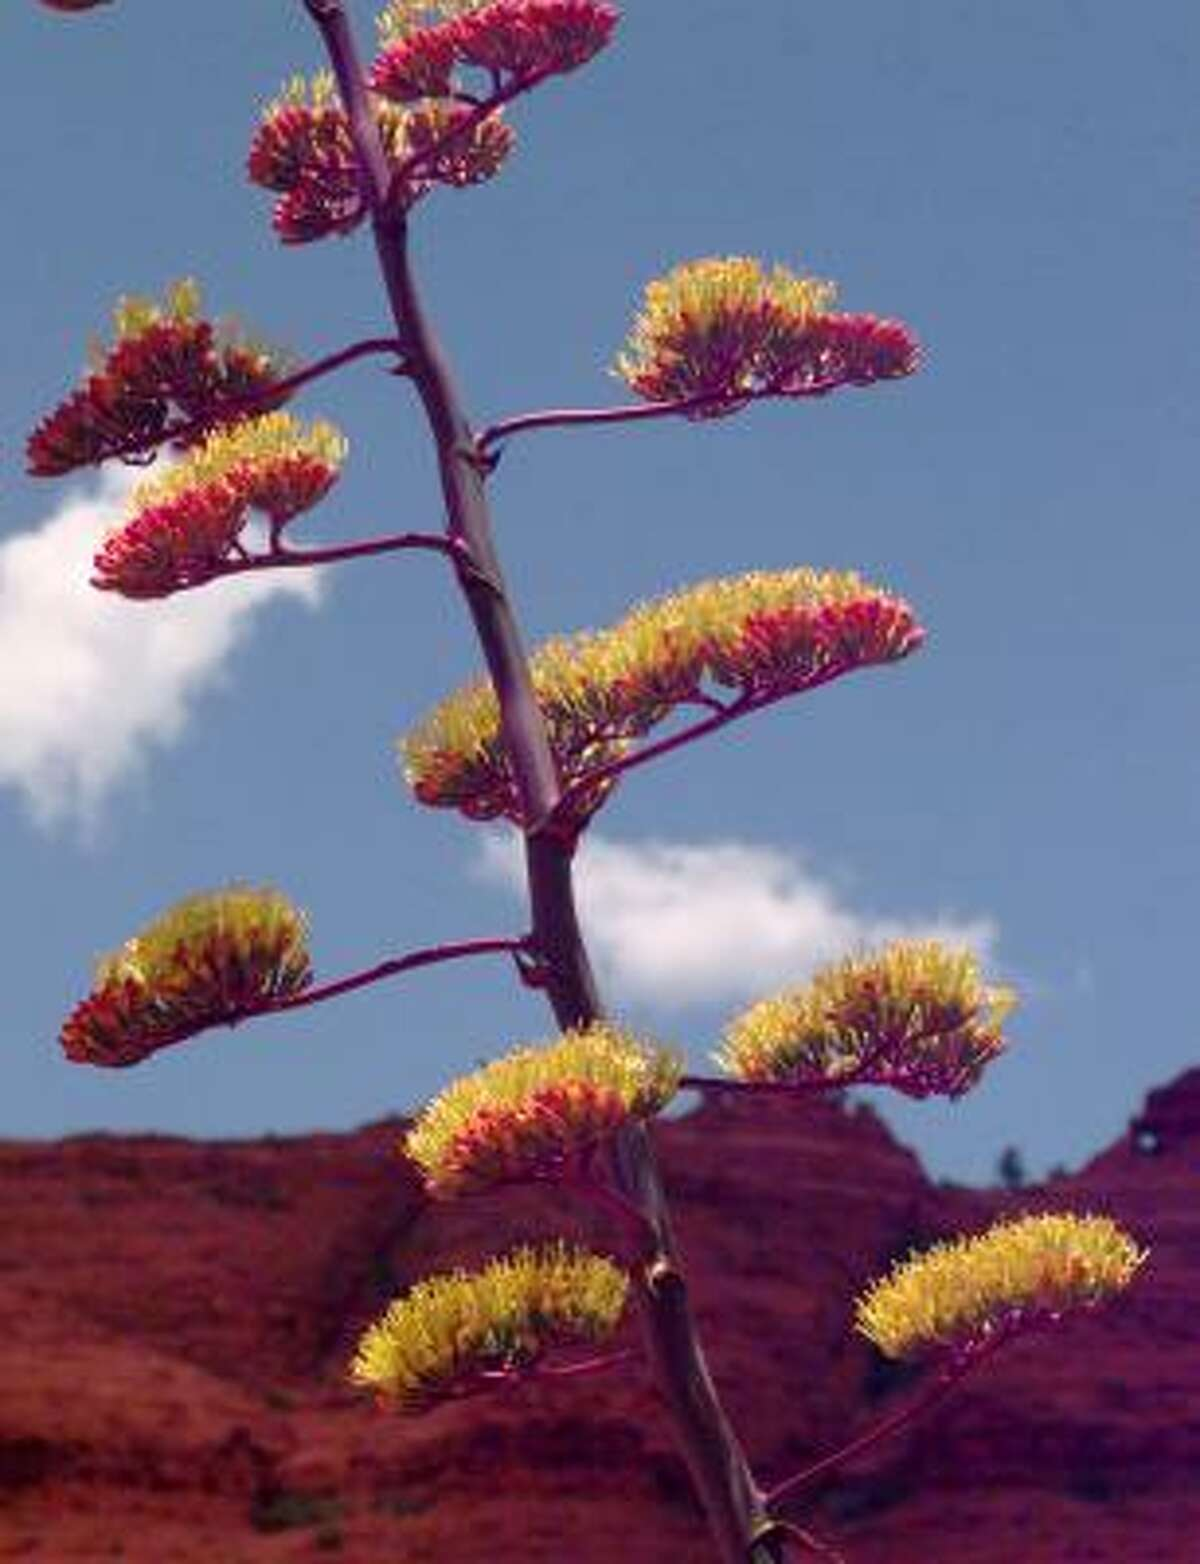 An agave plant blooms in Sedona.